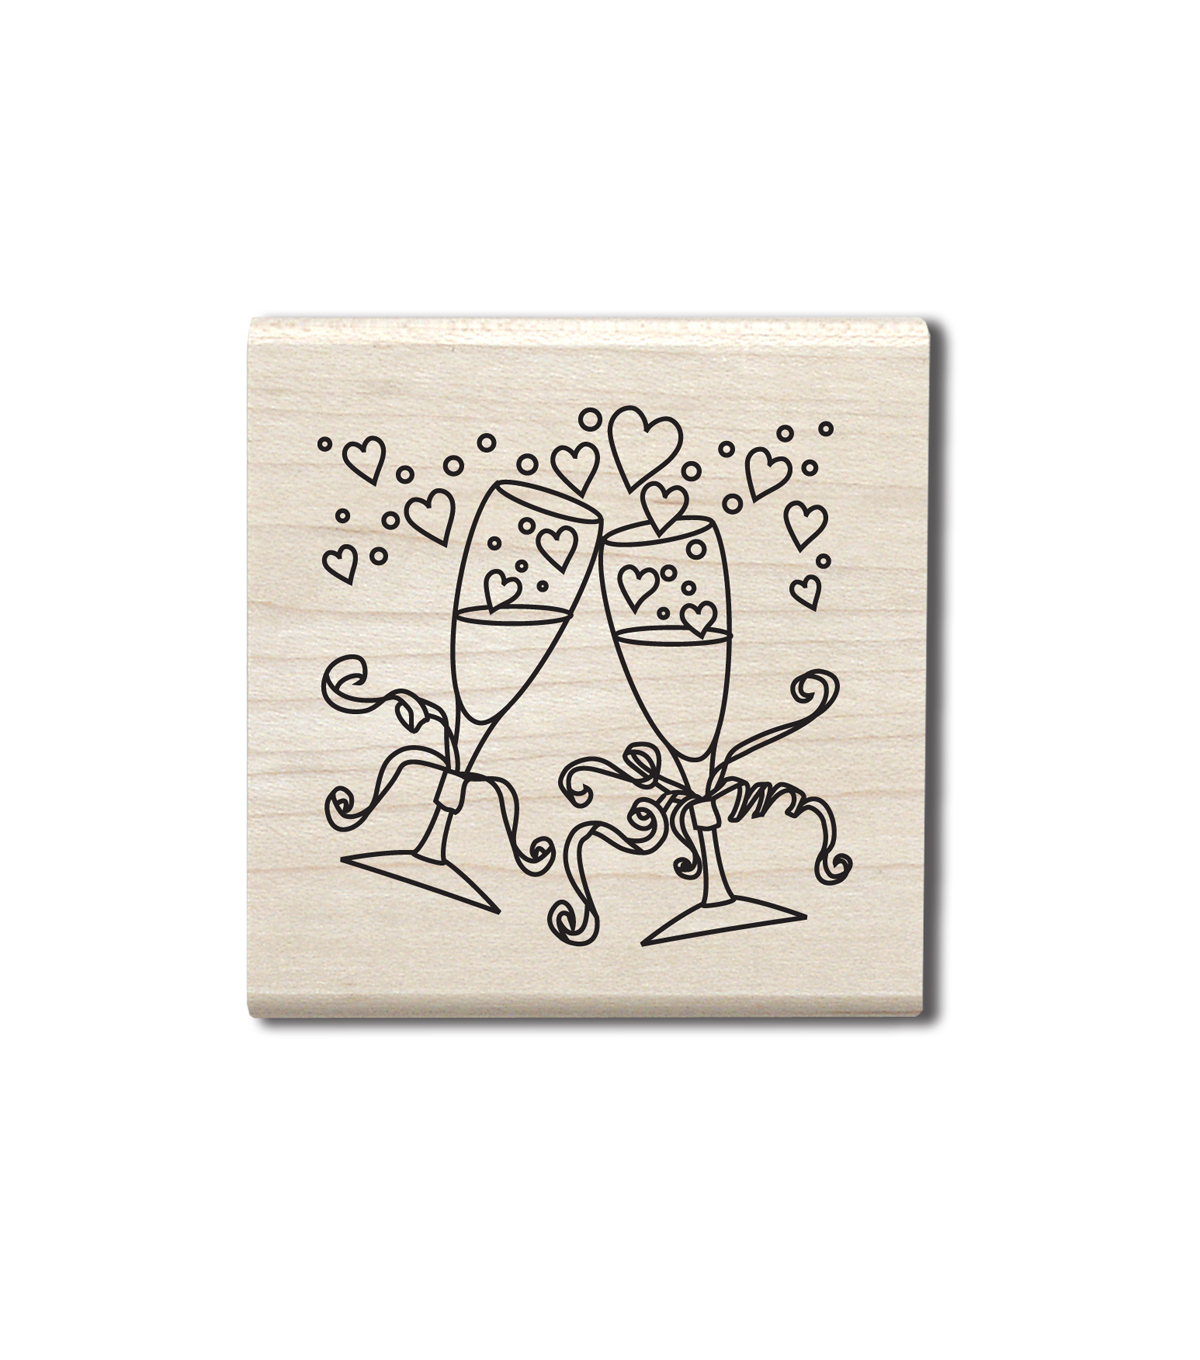 Hampton Art Outlines Wood Stamp-Champagne Glasses